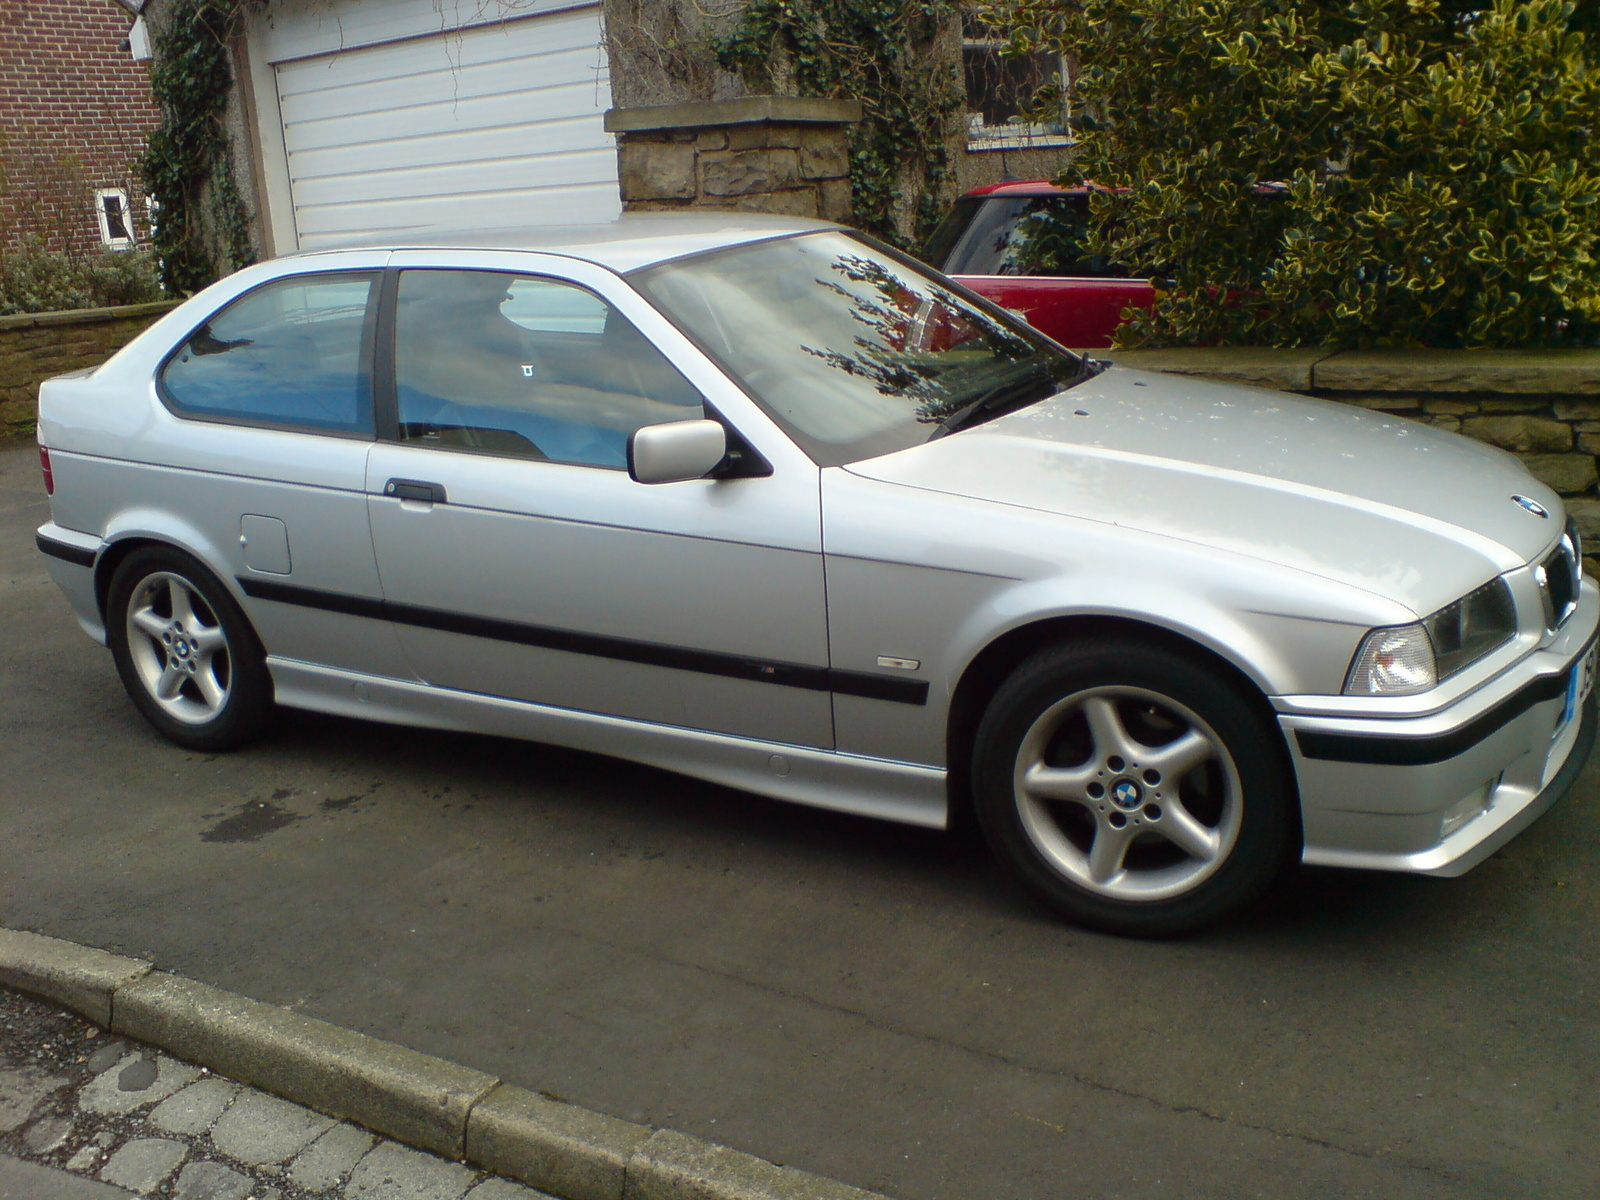 BMW 3 series 325i 1999 photo - 4